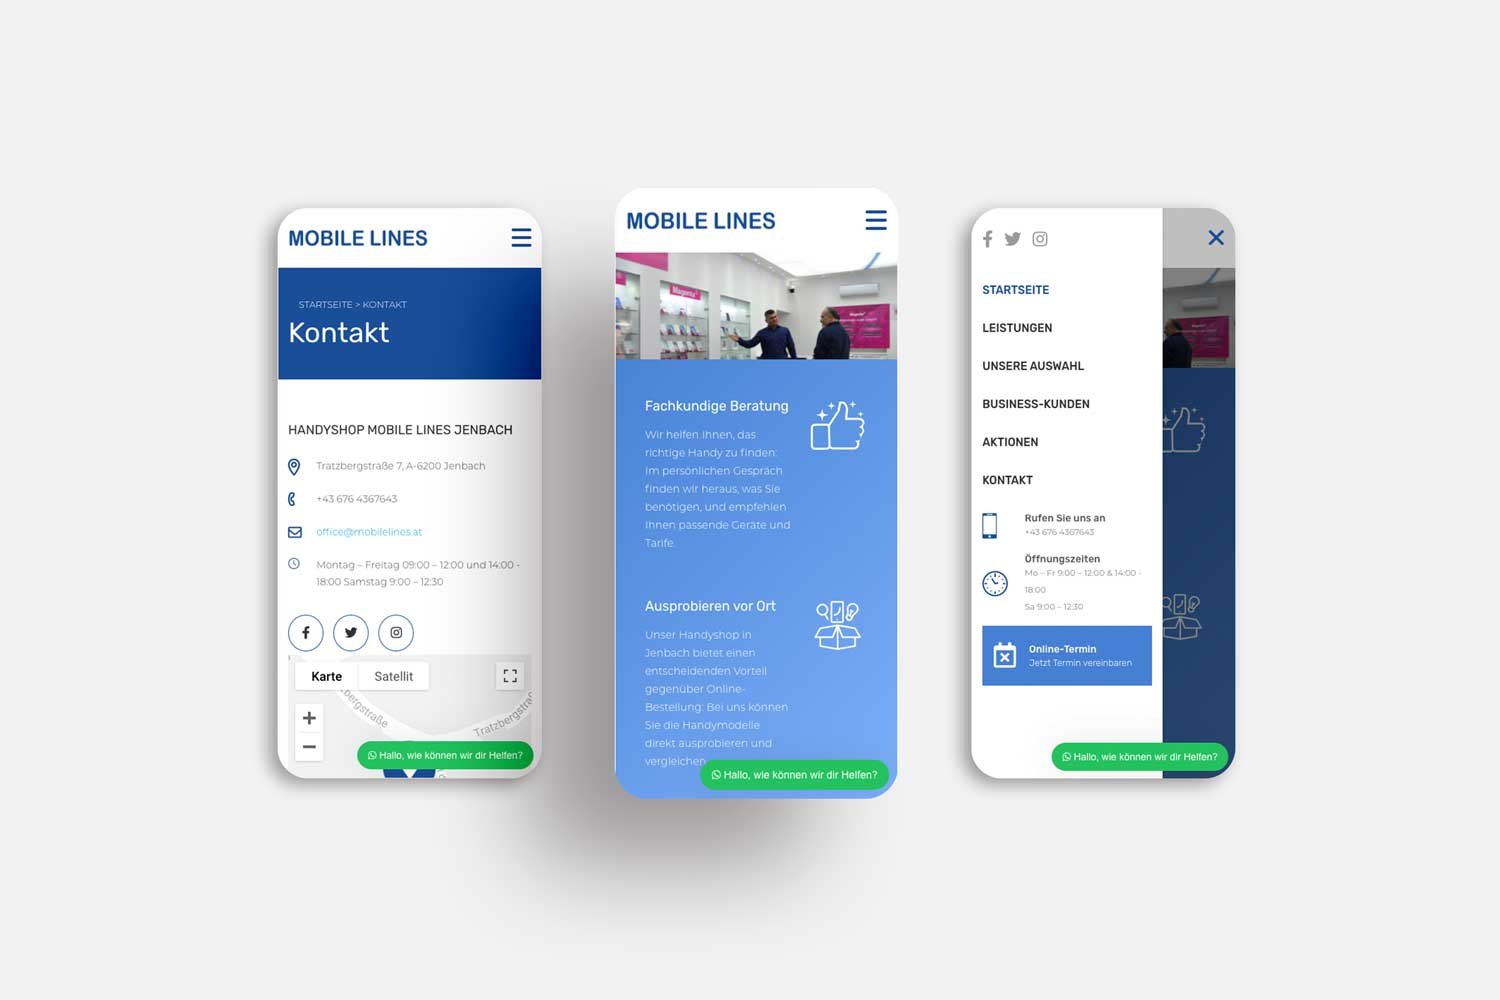 mobile-lines-1